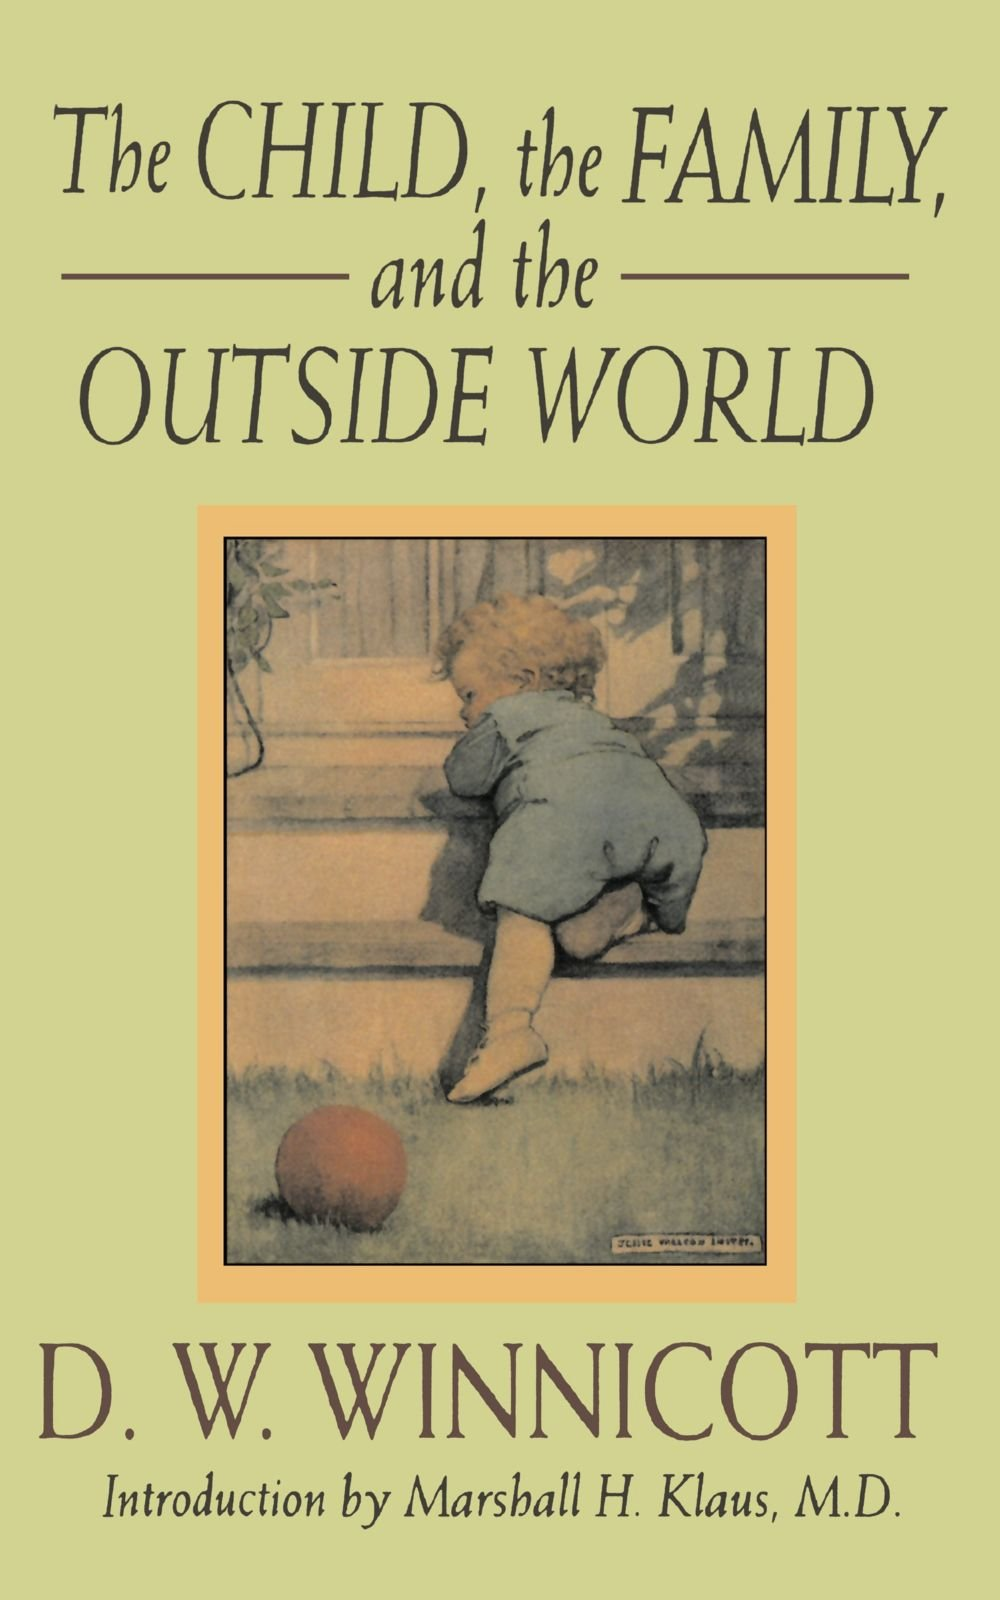 The Child, The Family And The Outside World (Classics in Child Development):  D. W. Winnicott: 9780201632682: Amazon.com: Books